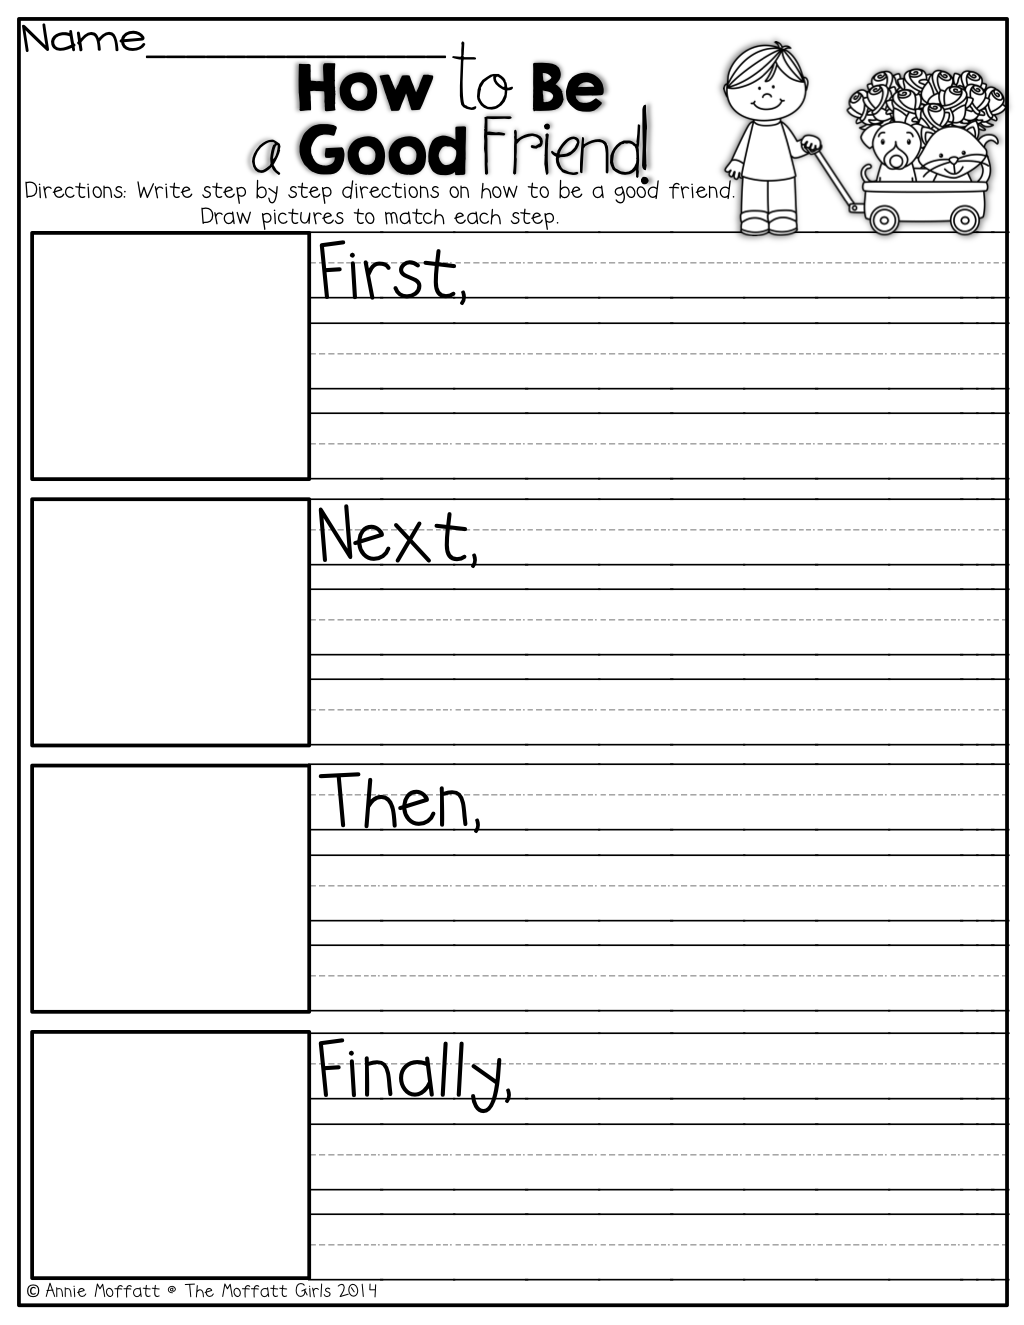 how to be a good friend writing prompt using transitional words how to be a good friend writing prompt using transitional words